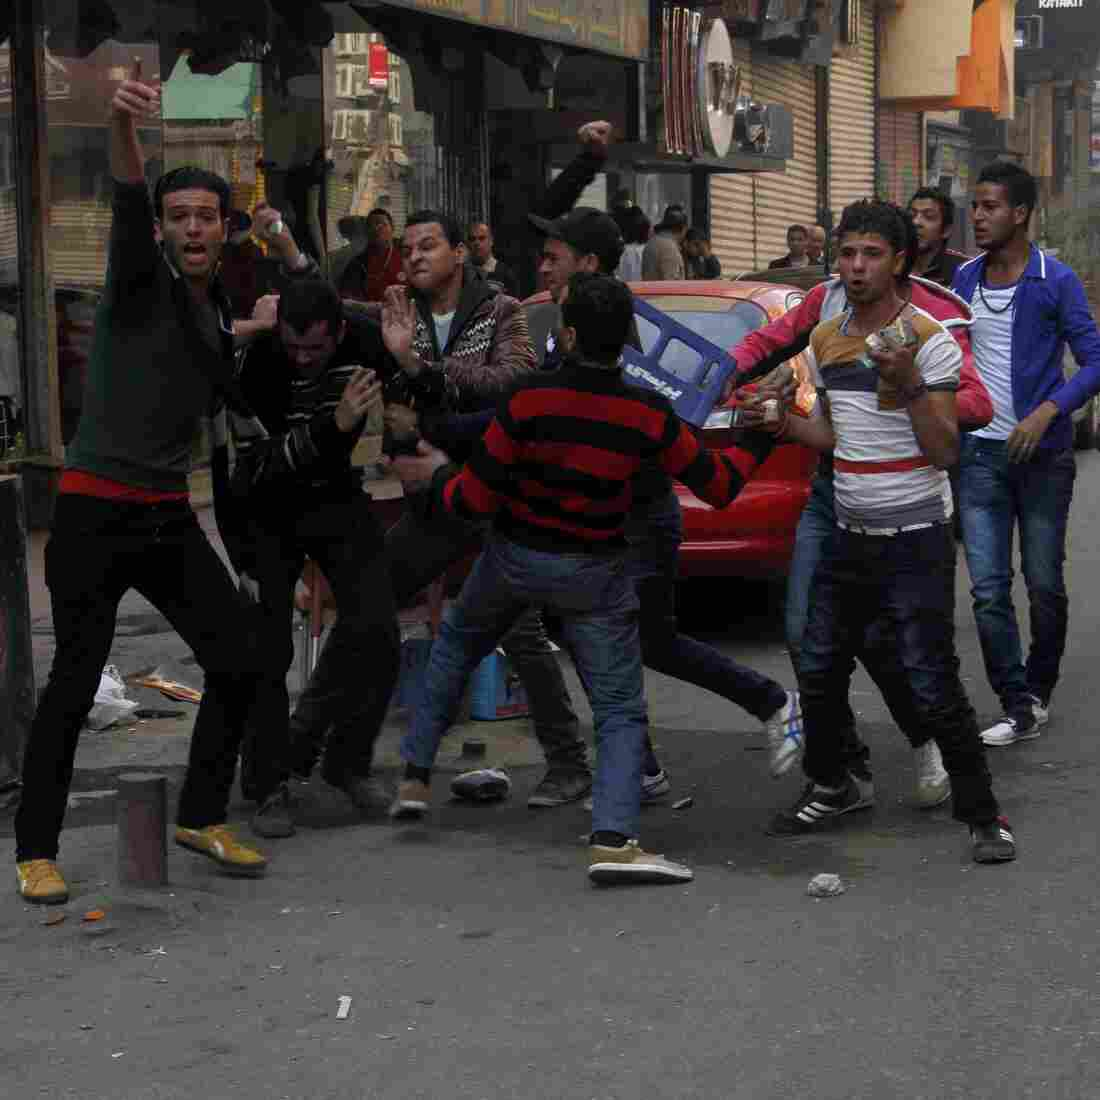 Clashes break out between rival Egyptian groups near Cairo's Tahrir square, on Jan. 25, 2014. The day marked the third anniversary of the uprising that toppled former ruler Hosni Mubarak, but the military is back in control in Egypt.